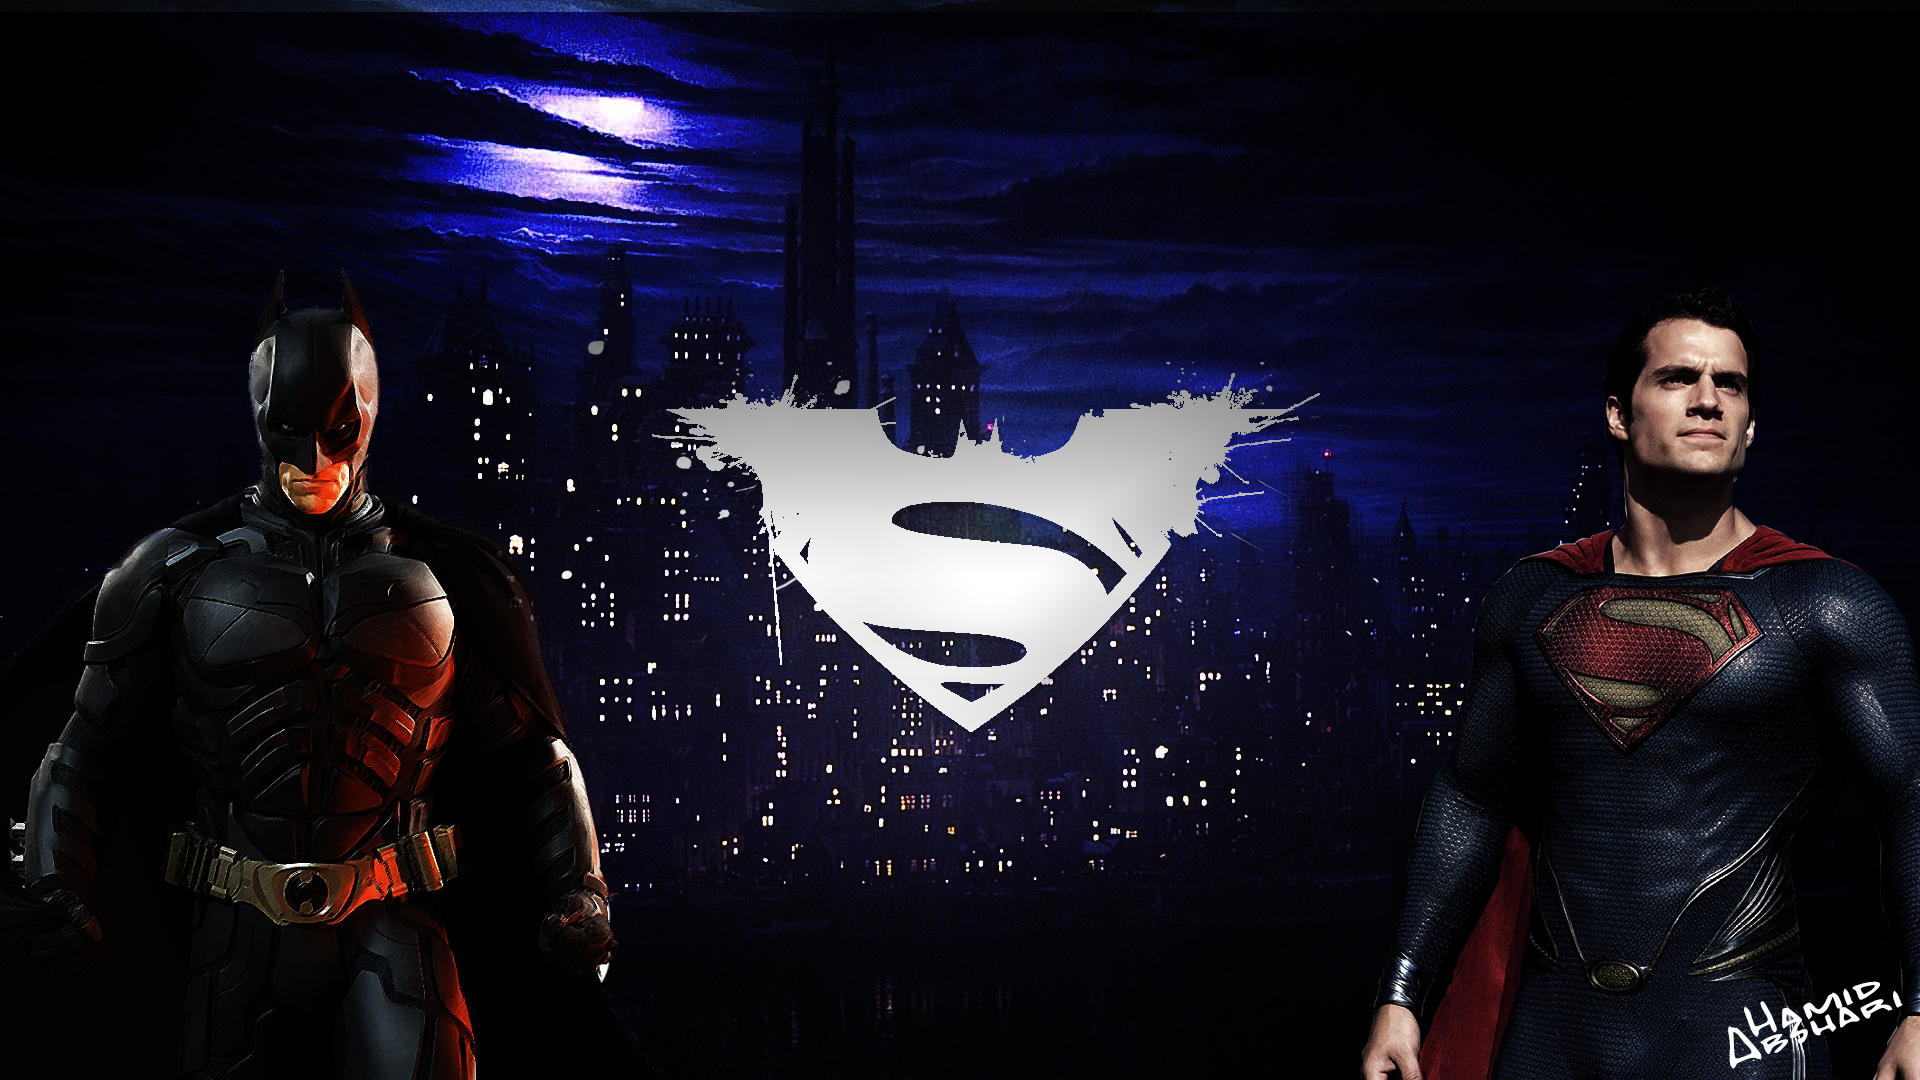 Batman Vs Superman Wallpaper By Hamidabshari Fan Art Movies 1920x1080